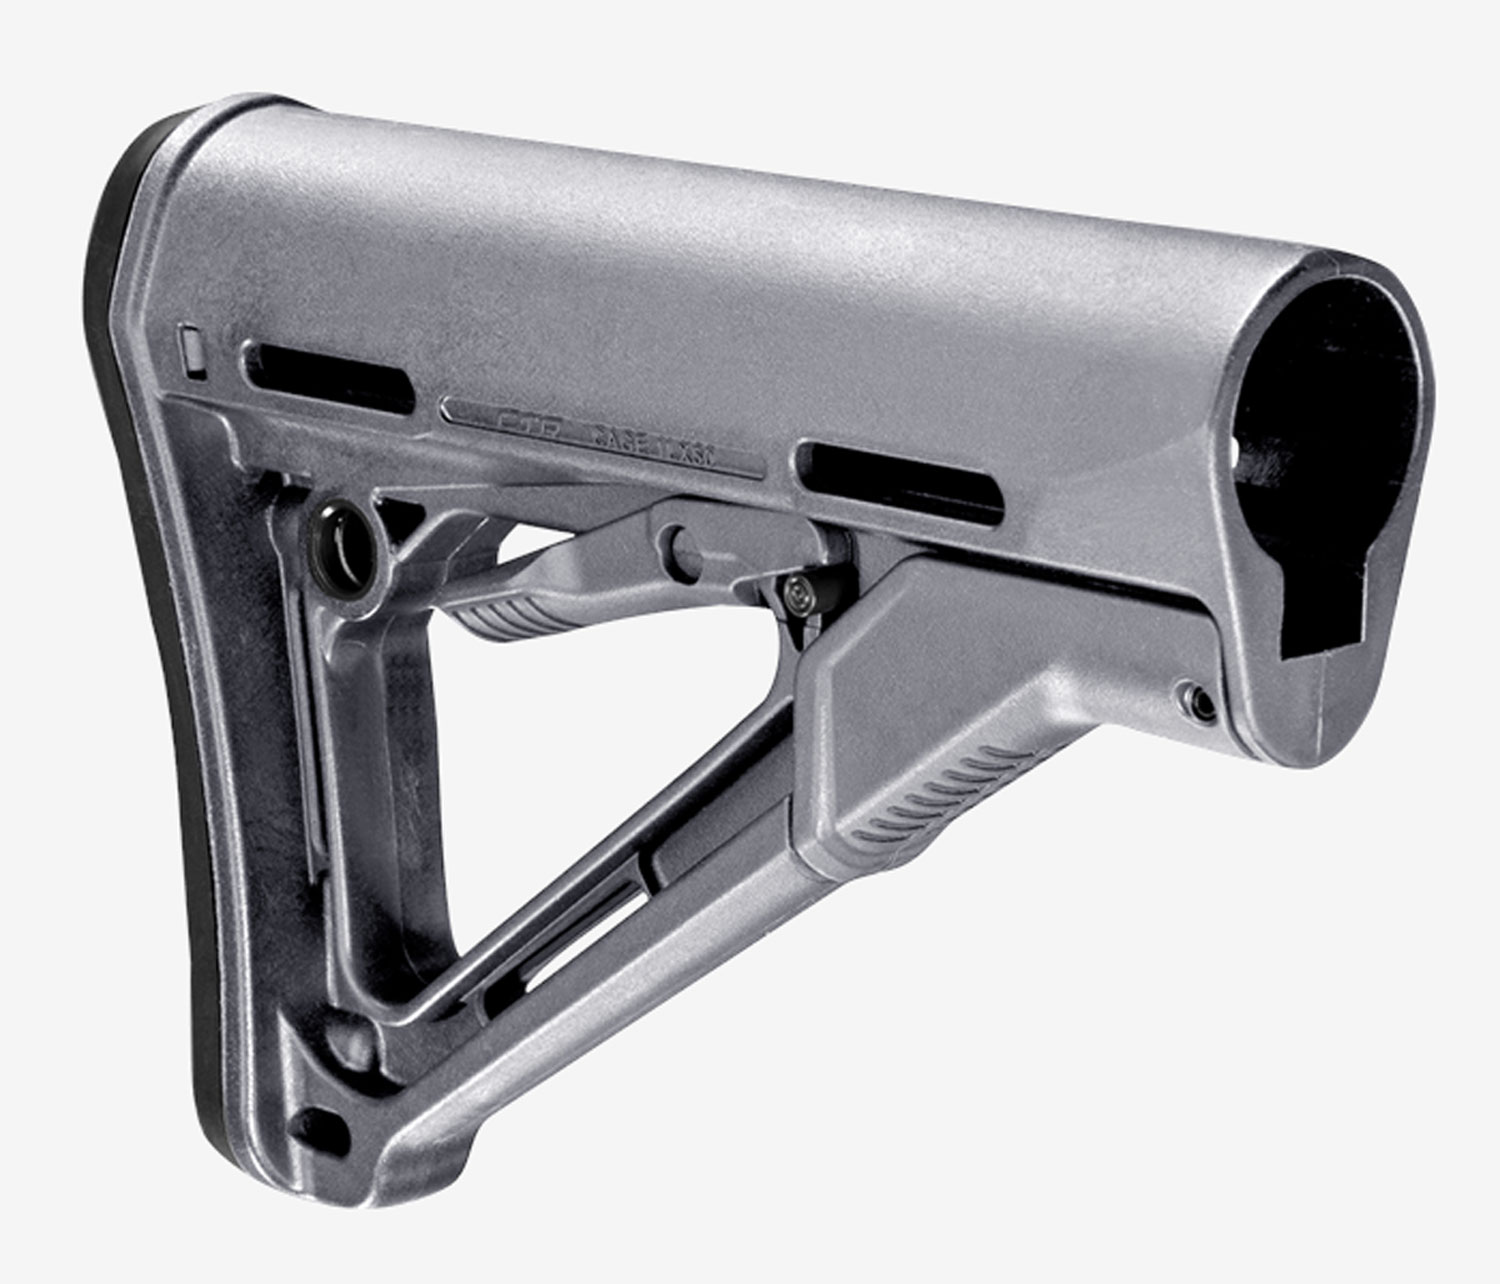 Magpul MAG310-GRY CTR Mil-Spec AR-15 Reinforced Polymer Gray